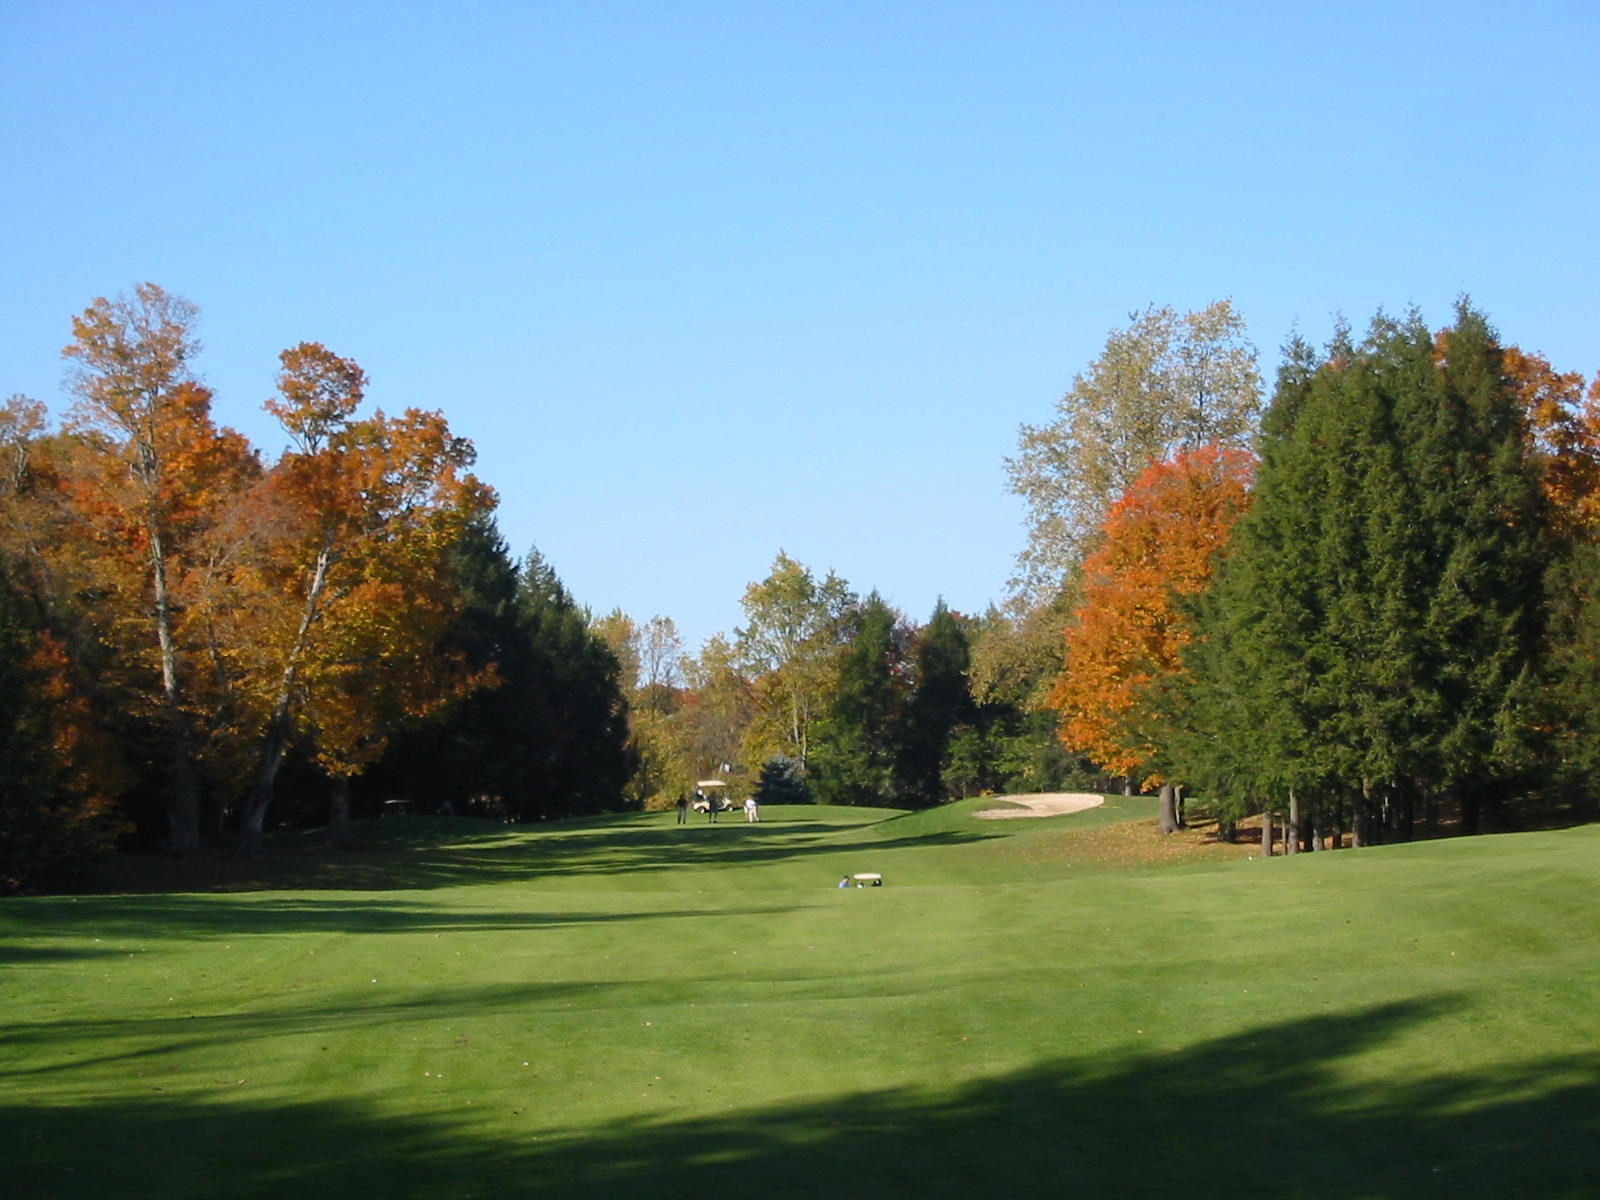 Overview of golf course named The Golf Club of Newport